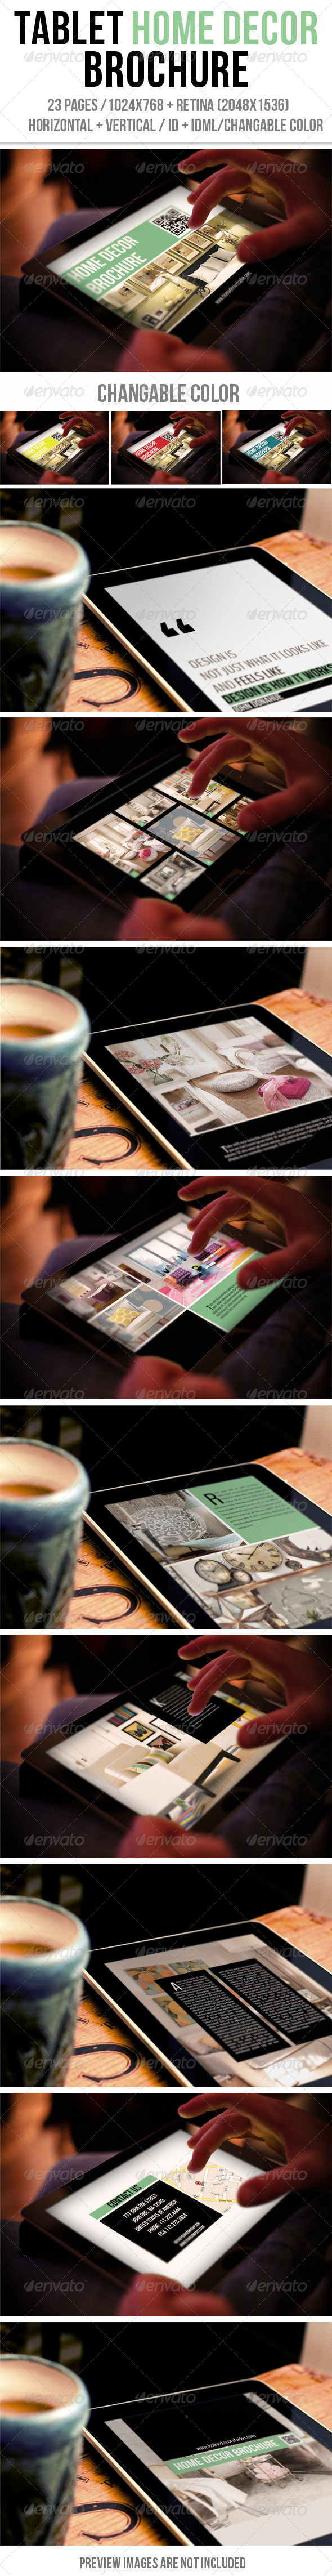 GraphicRiver Tablet Home Decor Brochure 6444855